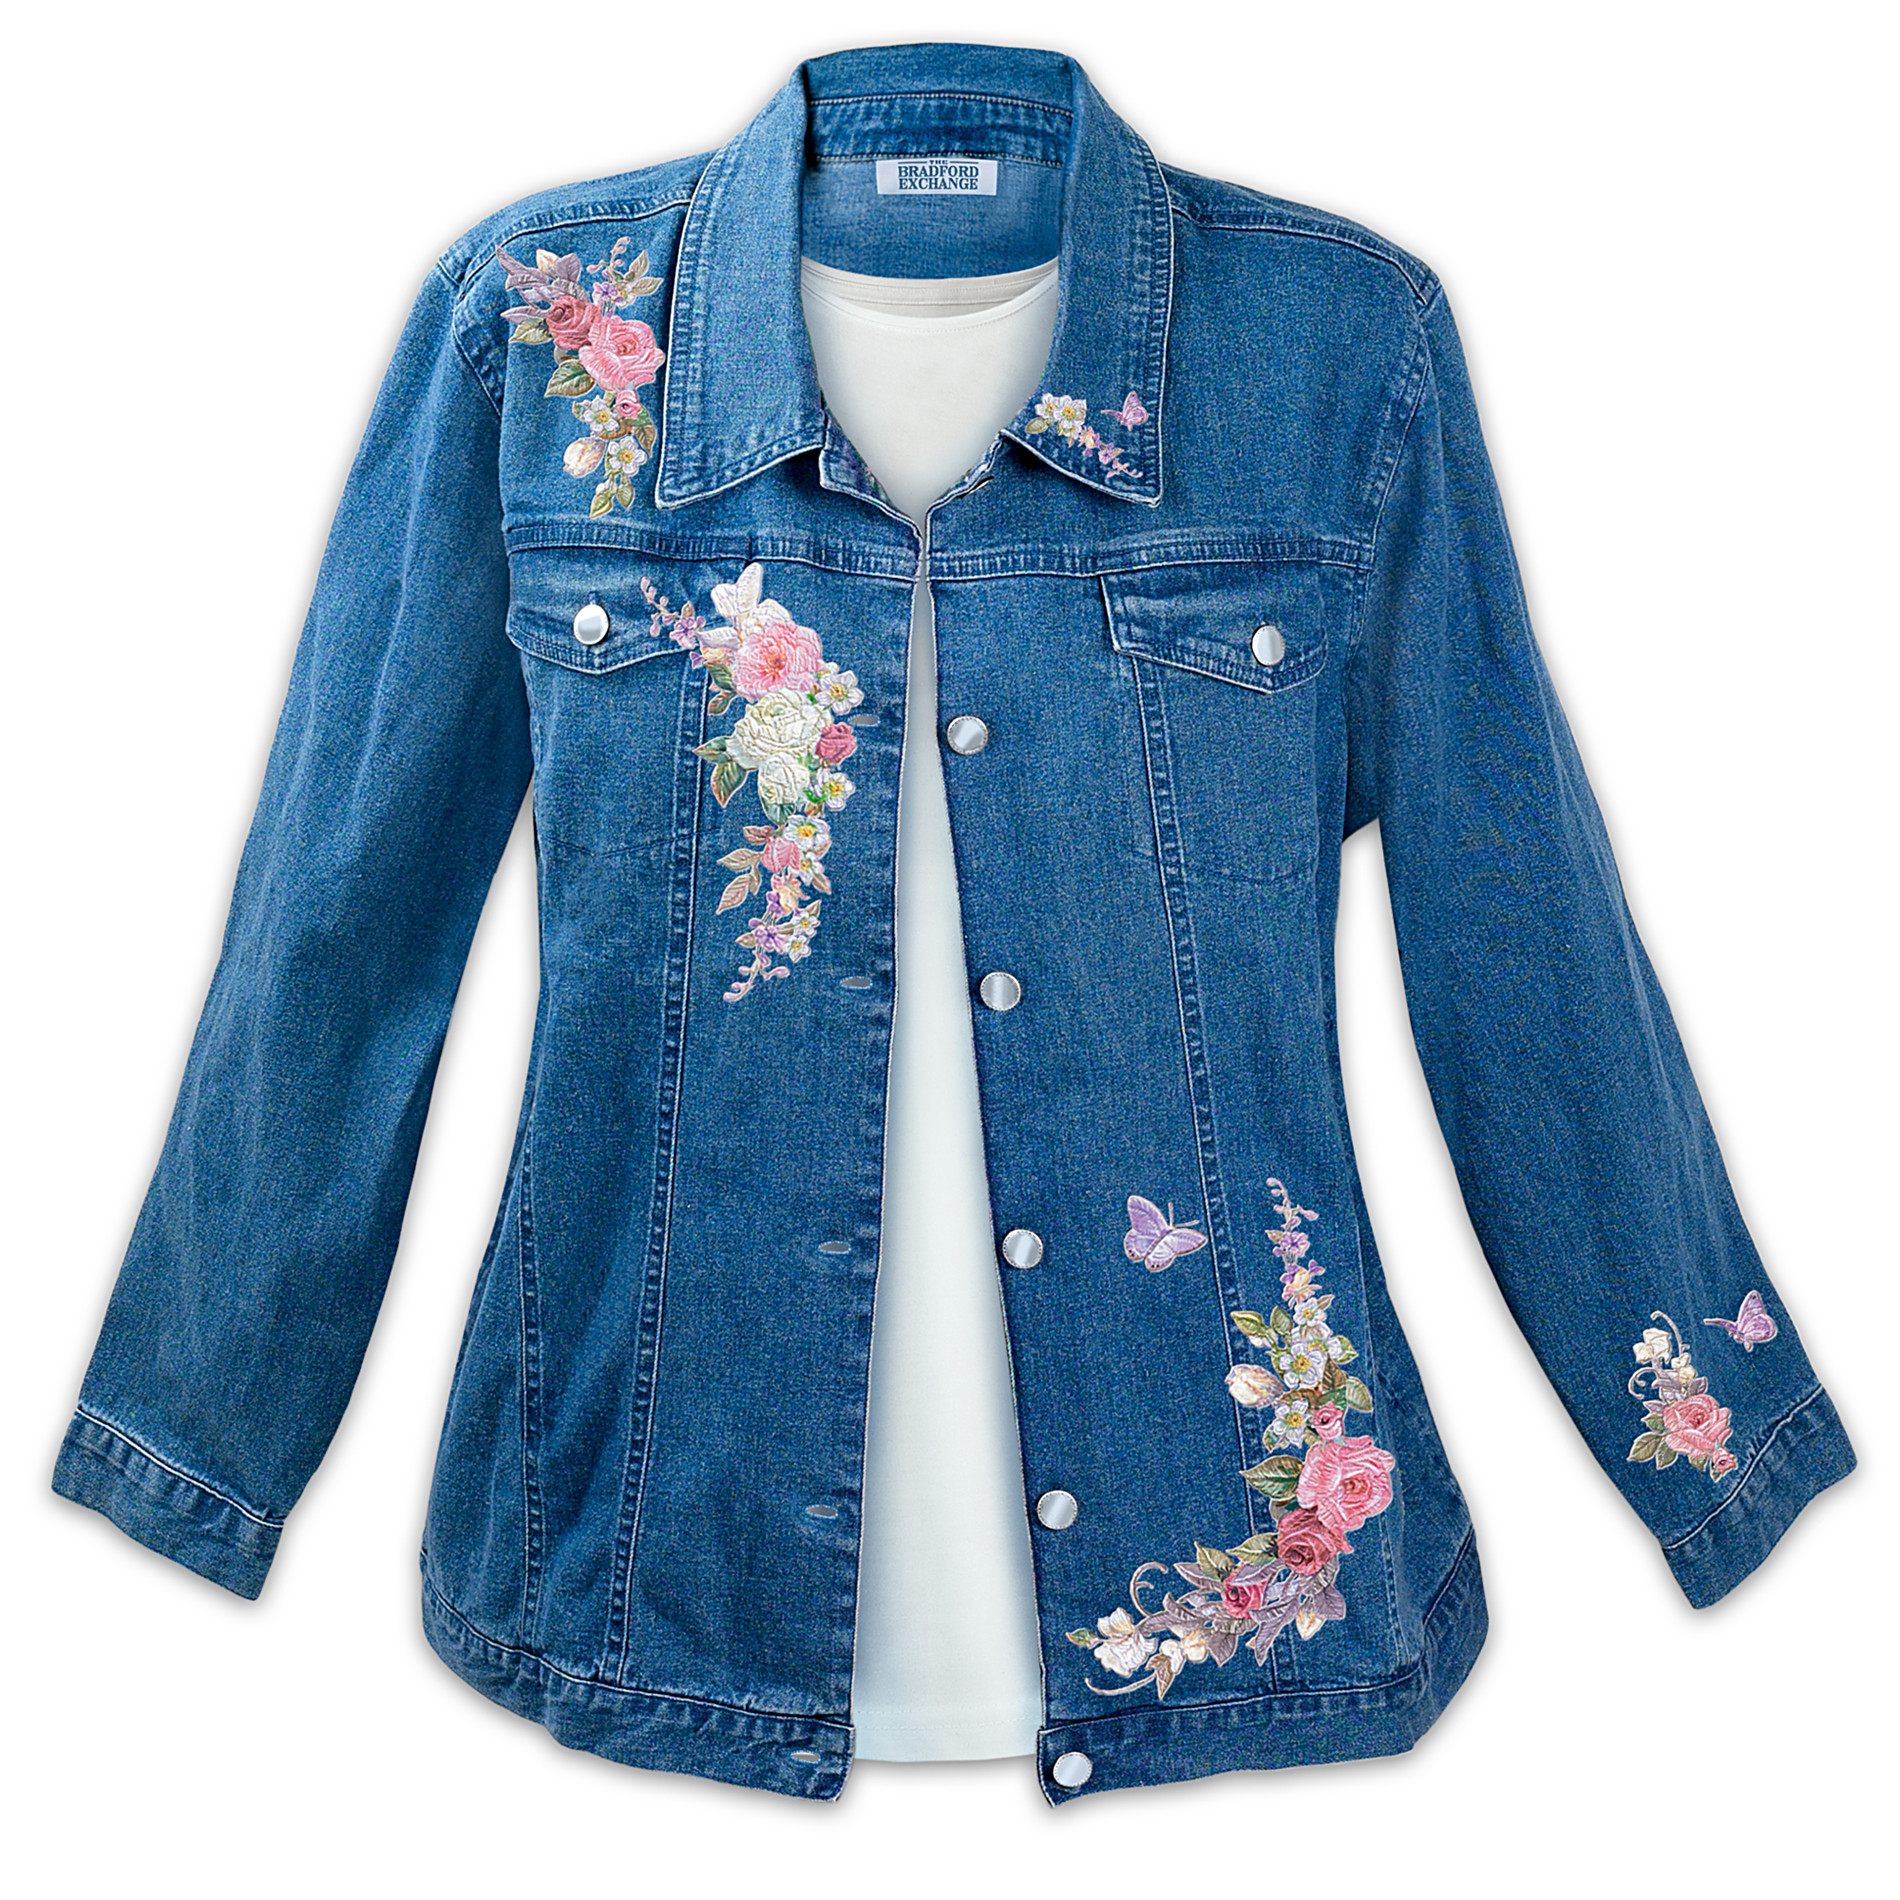 "The Bradford Exchange Lena Liu ""Wrapped In Roses"" Women's Denim Art Jacket at Sears.com"